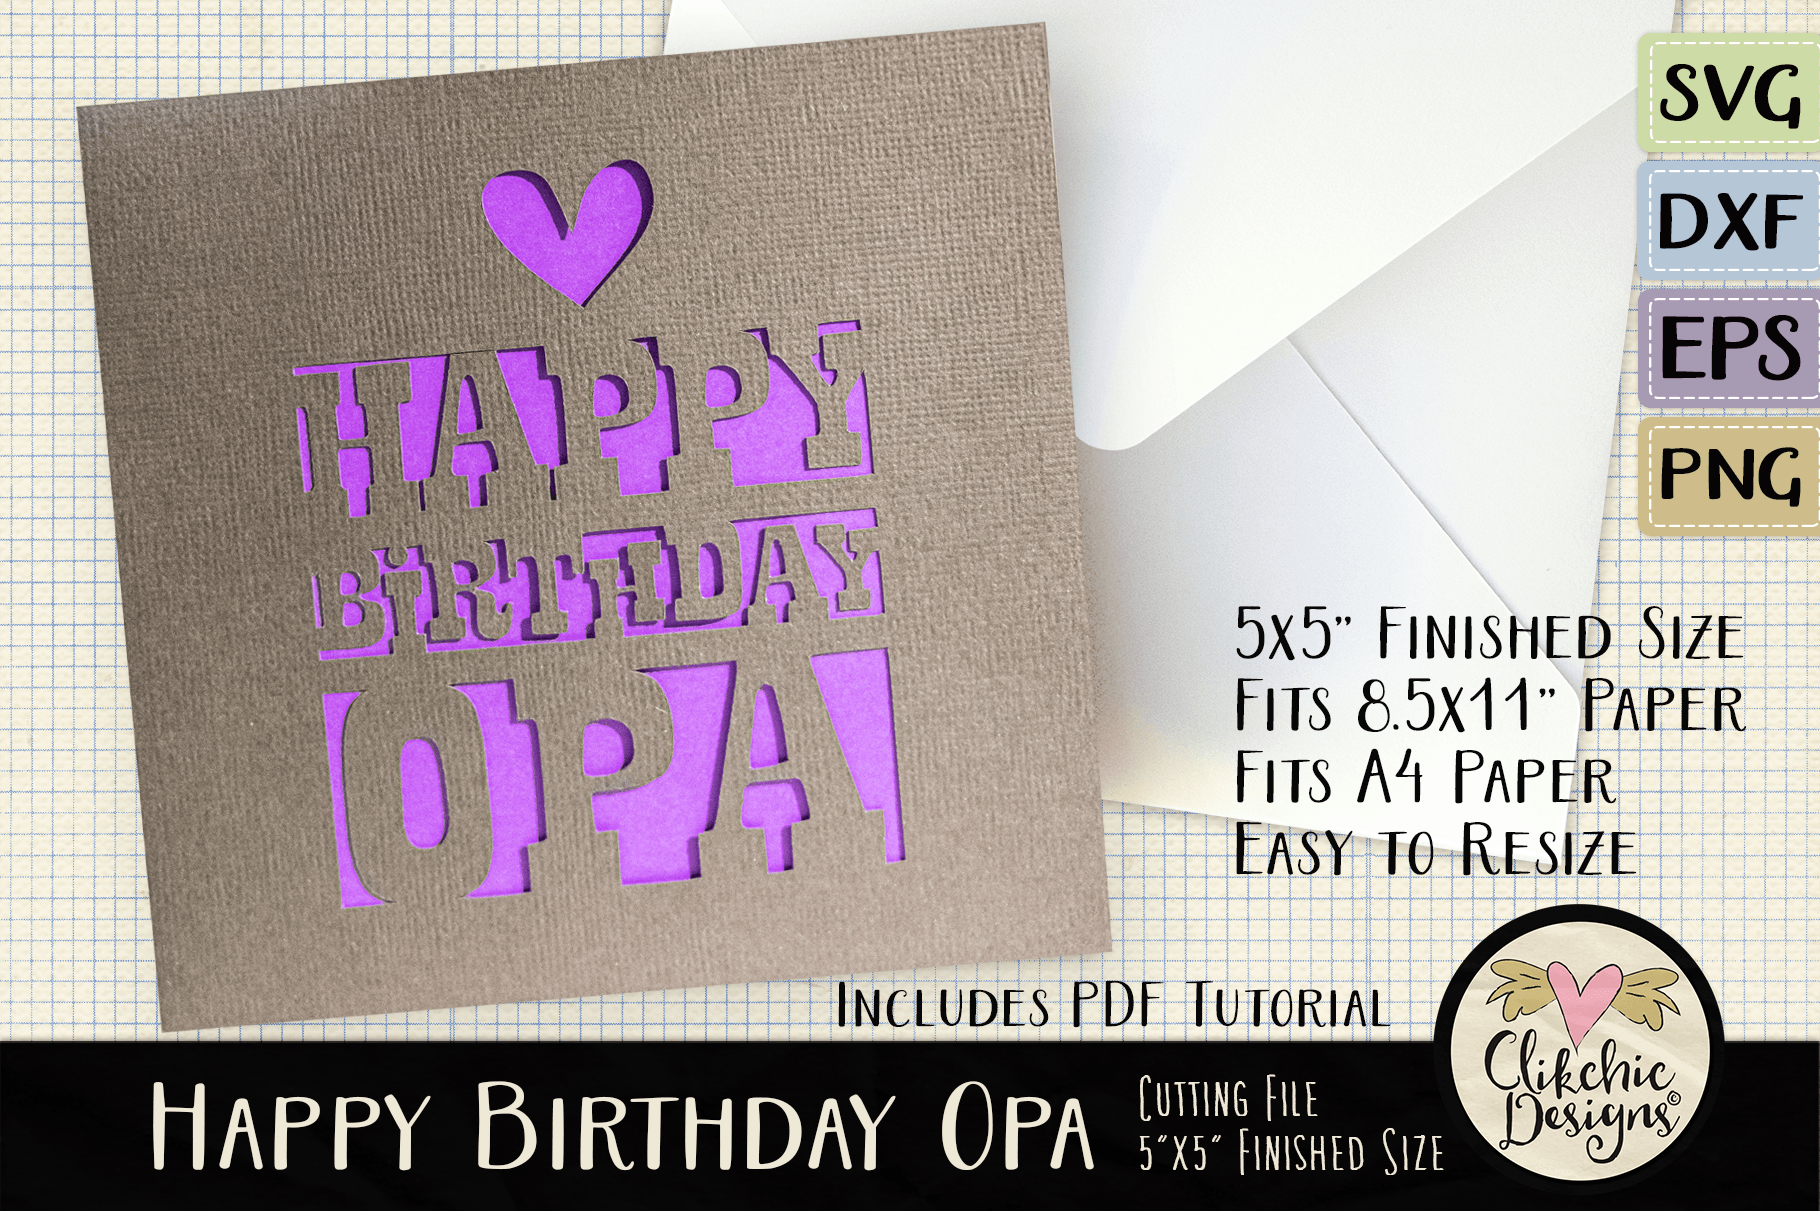 Happy Birthday Opa Card Cutting File Graphic By Clikchicdesigns